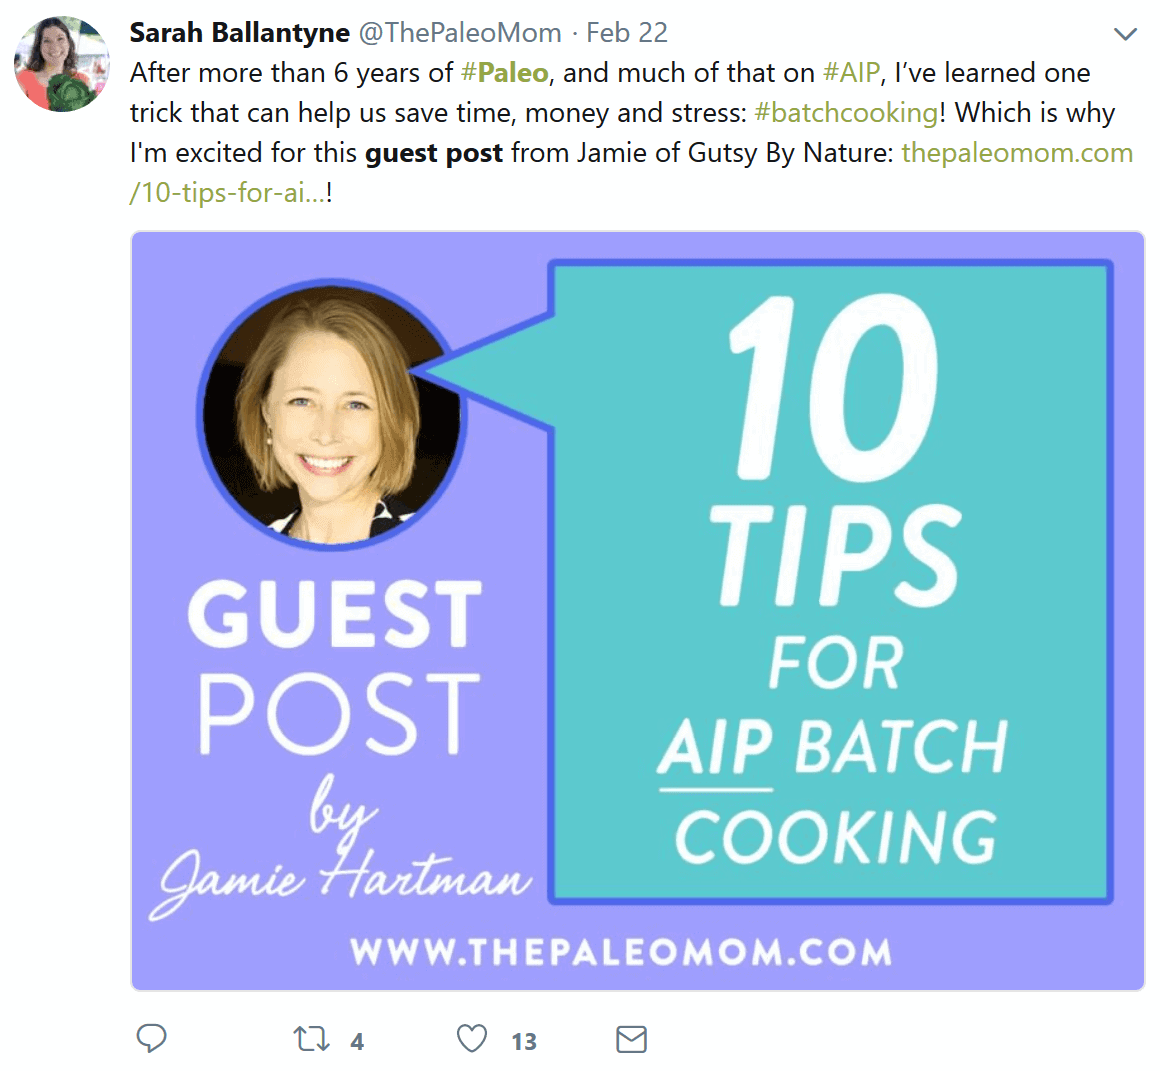 guest post result